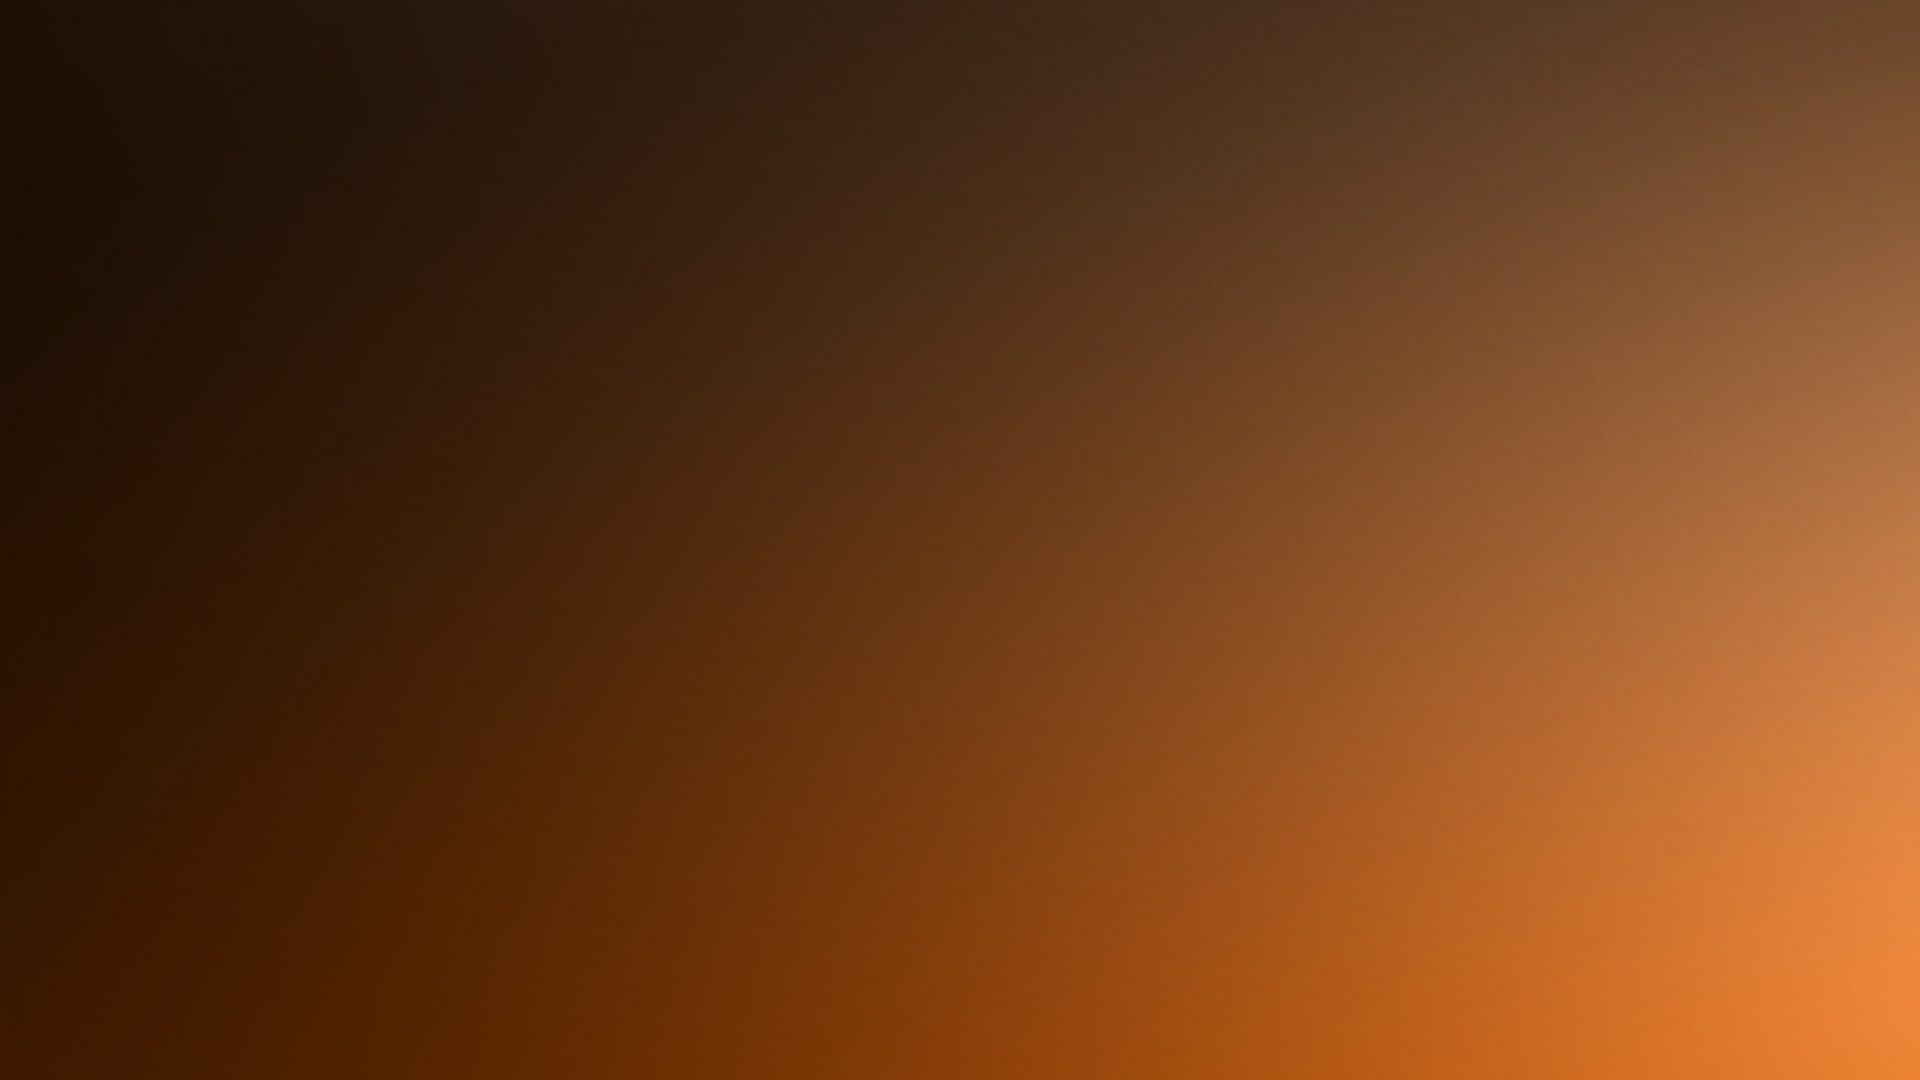 Download Wallpaper 1920x1080 brown, shadow, background